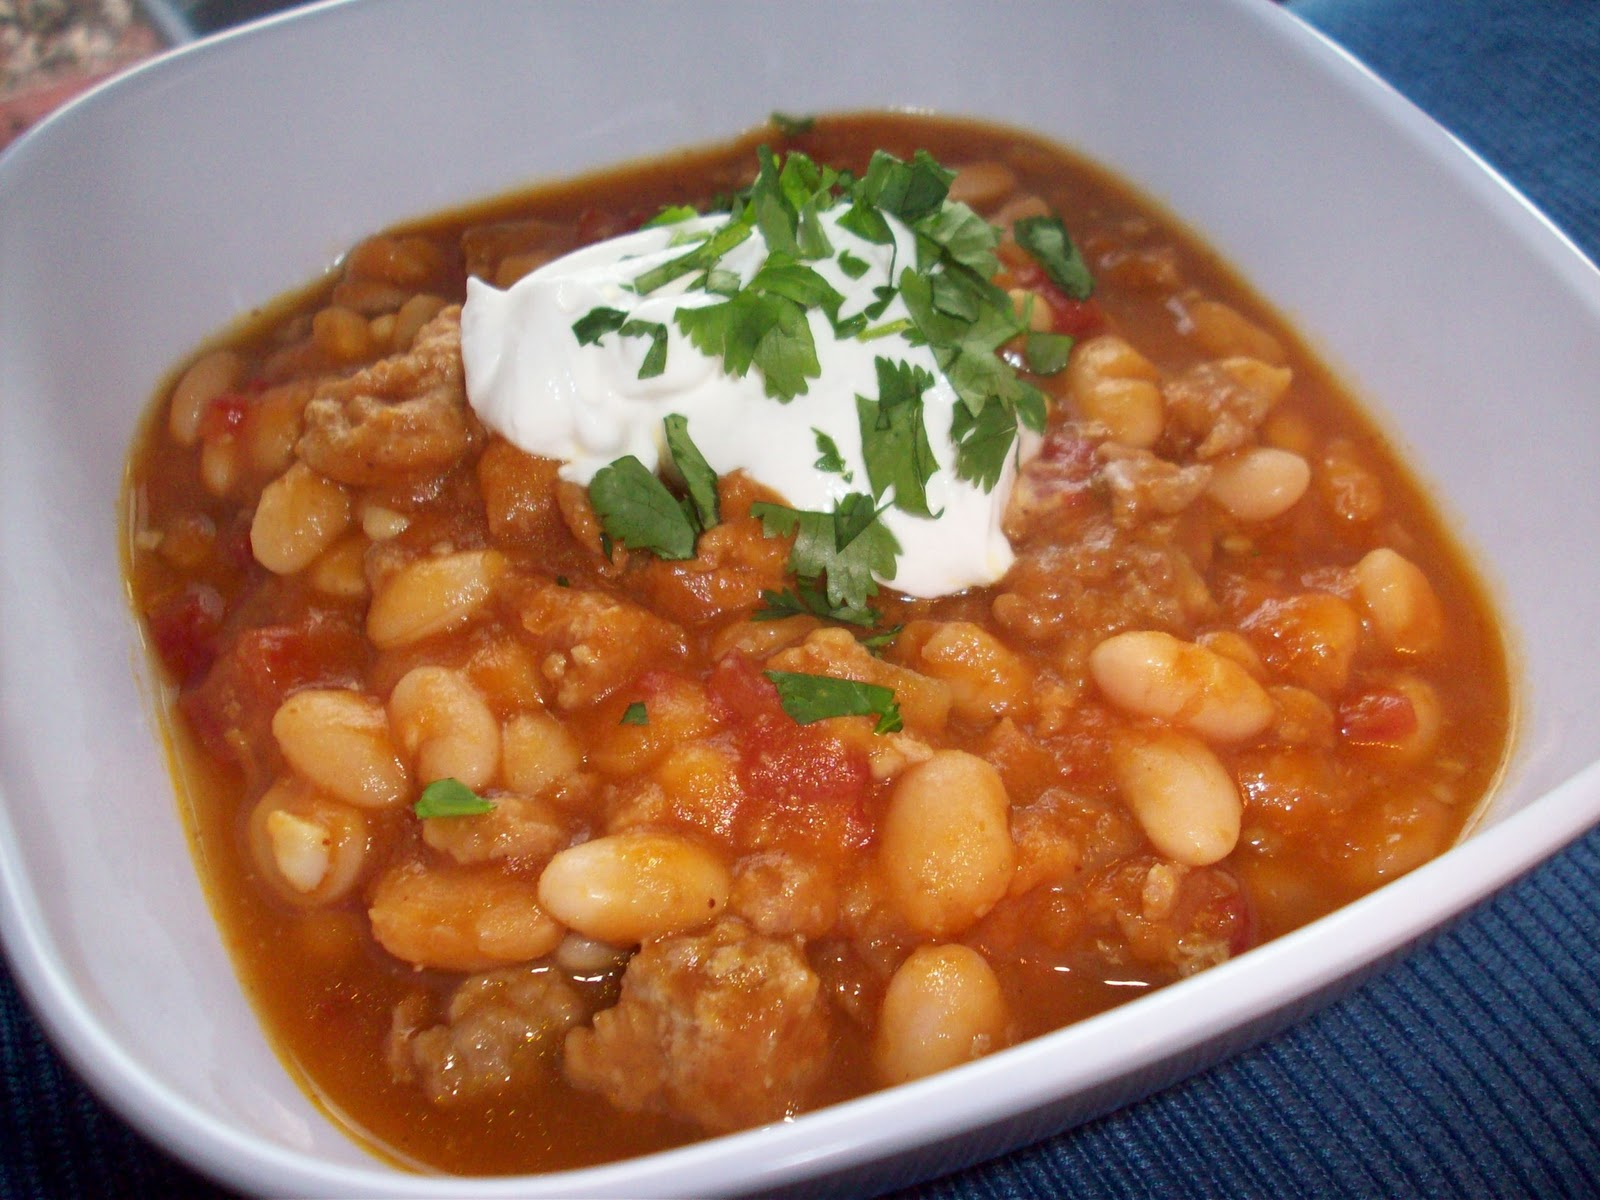 ... !: Soups for a Saturday: Crock Pot Turkey White Bean Pumpkin Chili